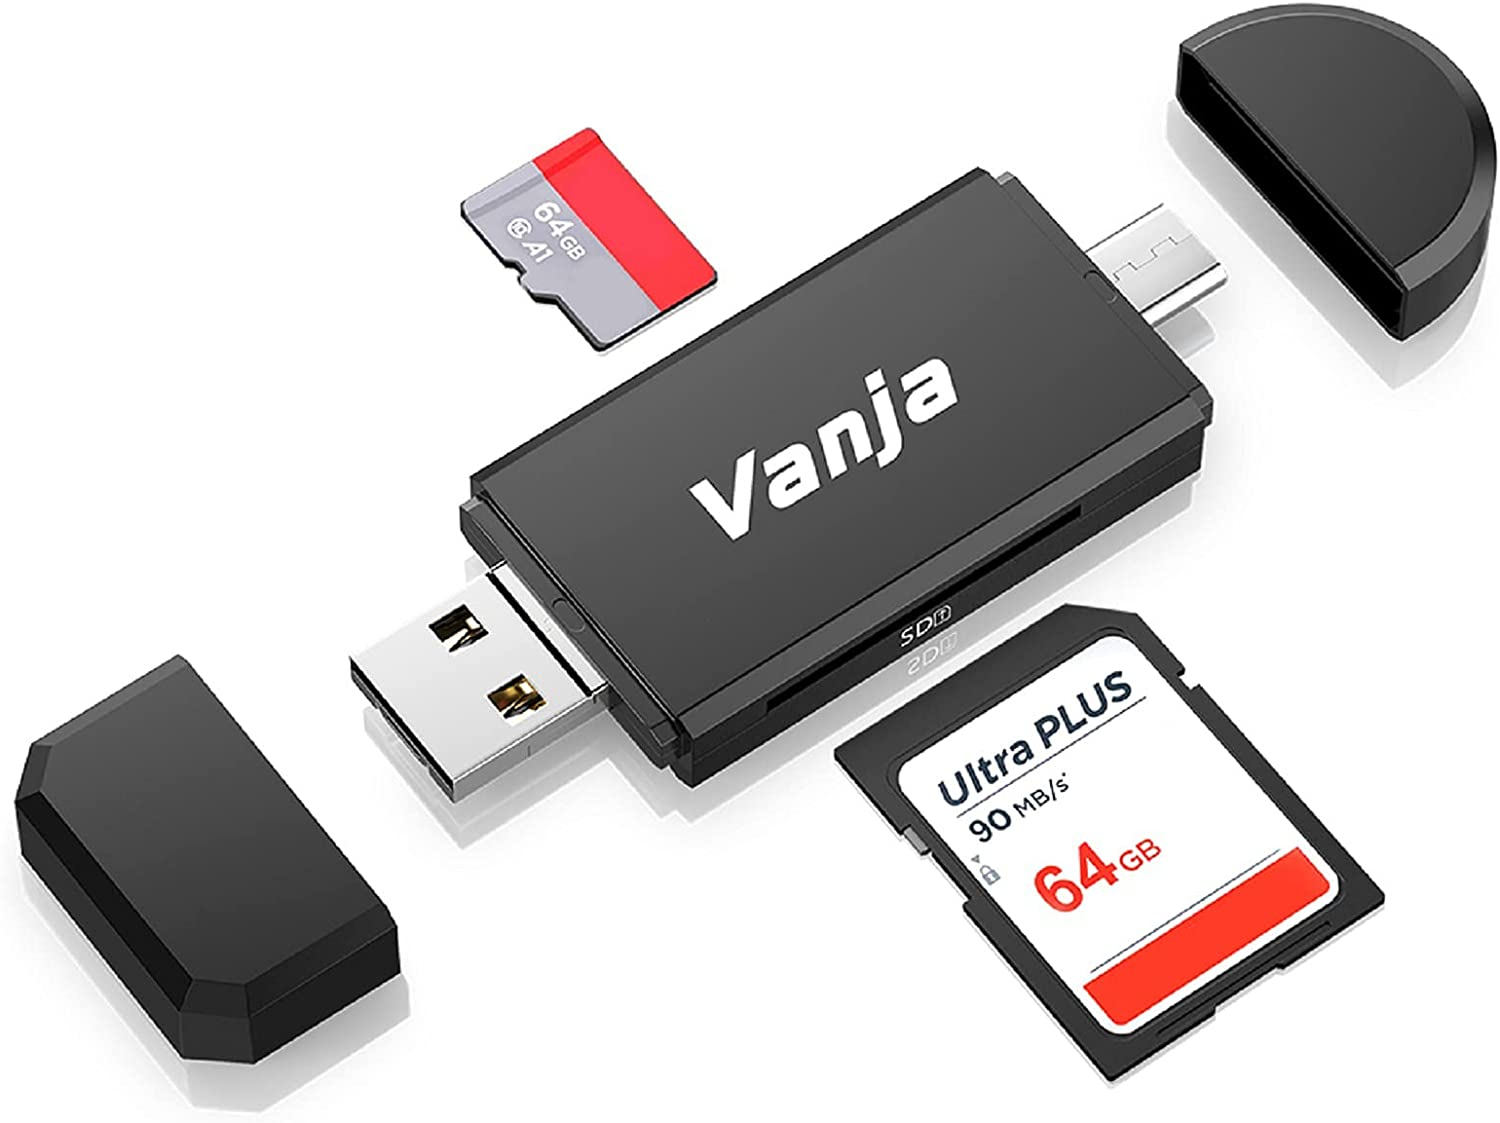 Vanja Type C Card Reader, 3-in-1 USB 2.0 Portable Memory Card Reader and Micro USB to USB C OTG Adapter for SD-3C SDXC SDHC MMC RS-MMC UHS-I Cards.